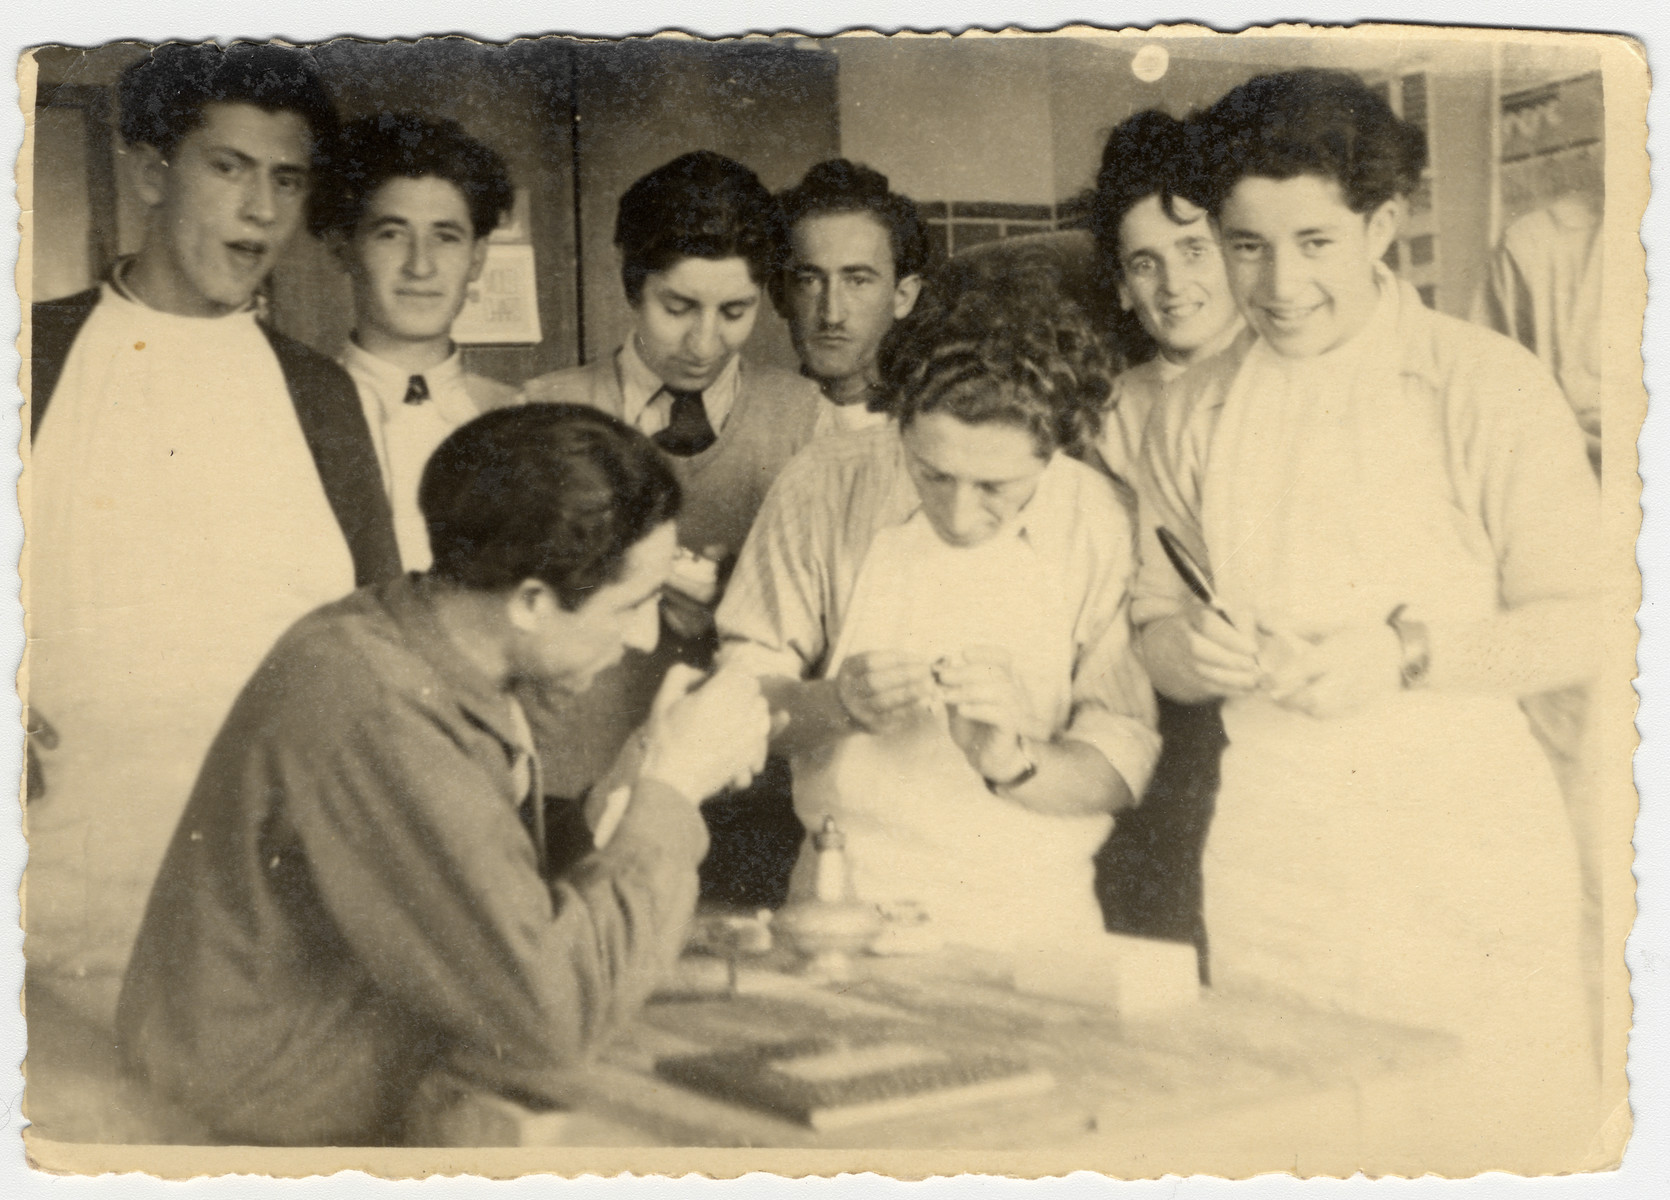 A group of young people learn dentistry in an ORT vocational school in the Bergen-Belsen displaced persons camp.